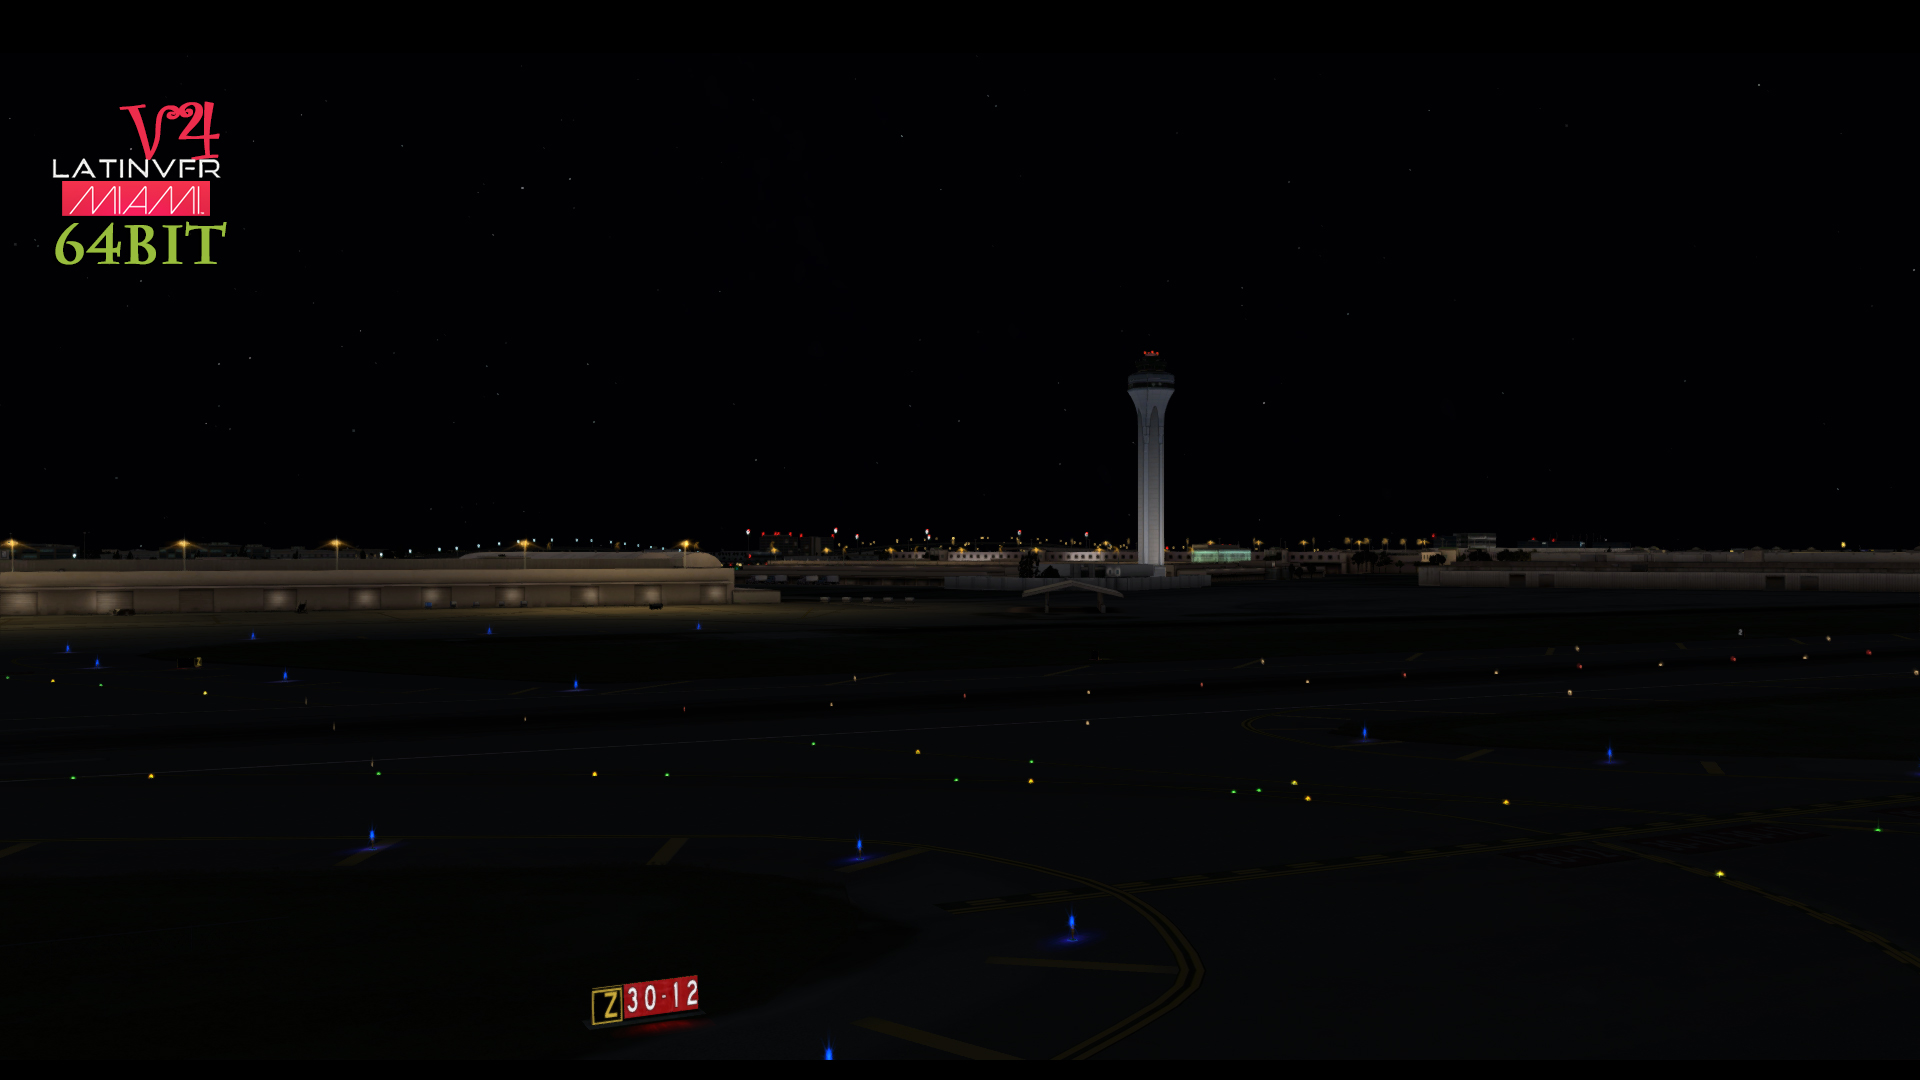 LATINVFR - MIAMI INTERNATIONAL AIRPORT KMIA V4 FSX P3D